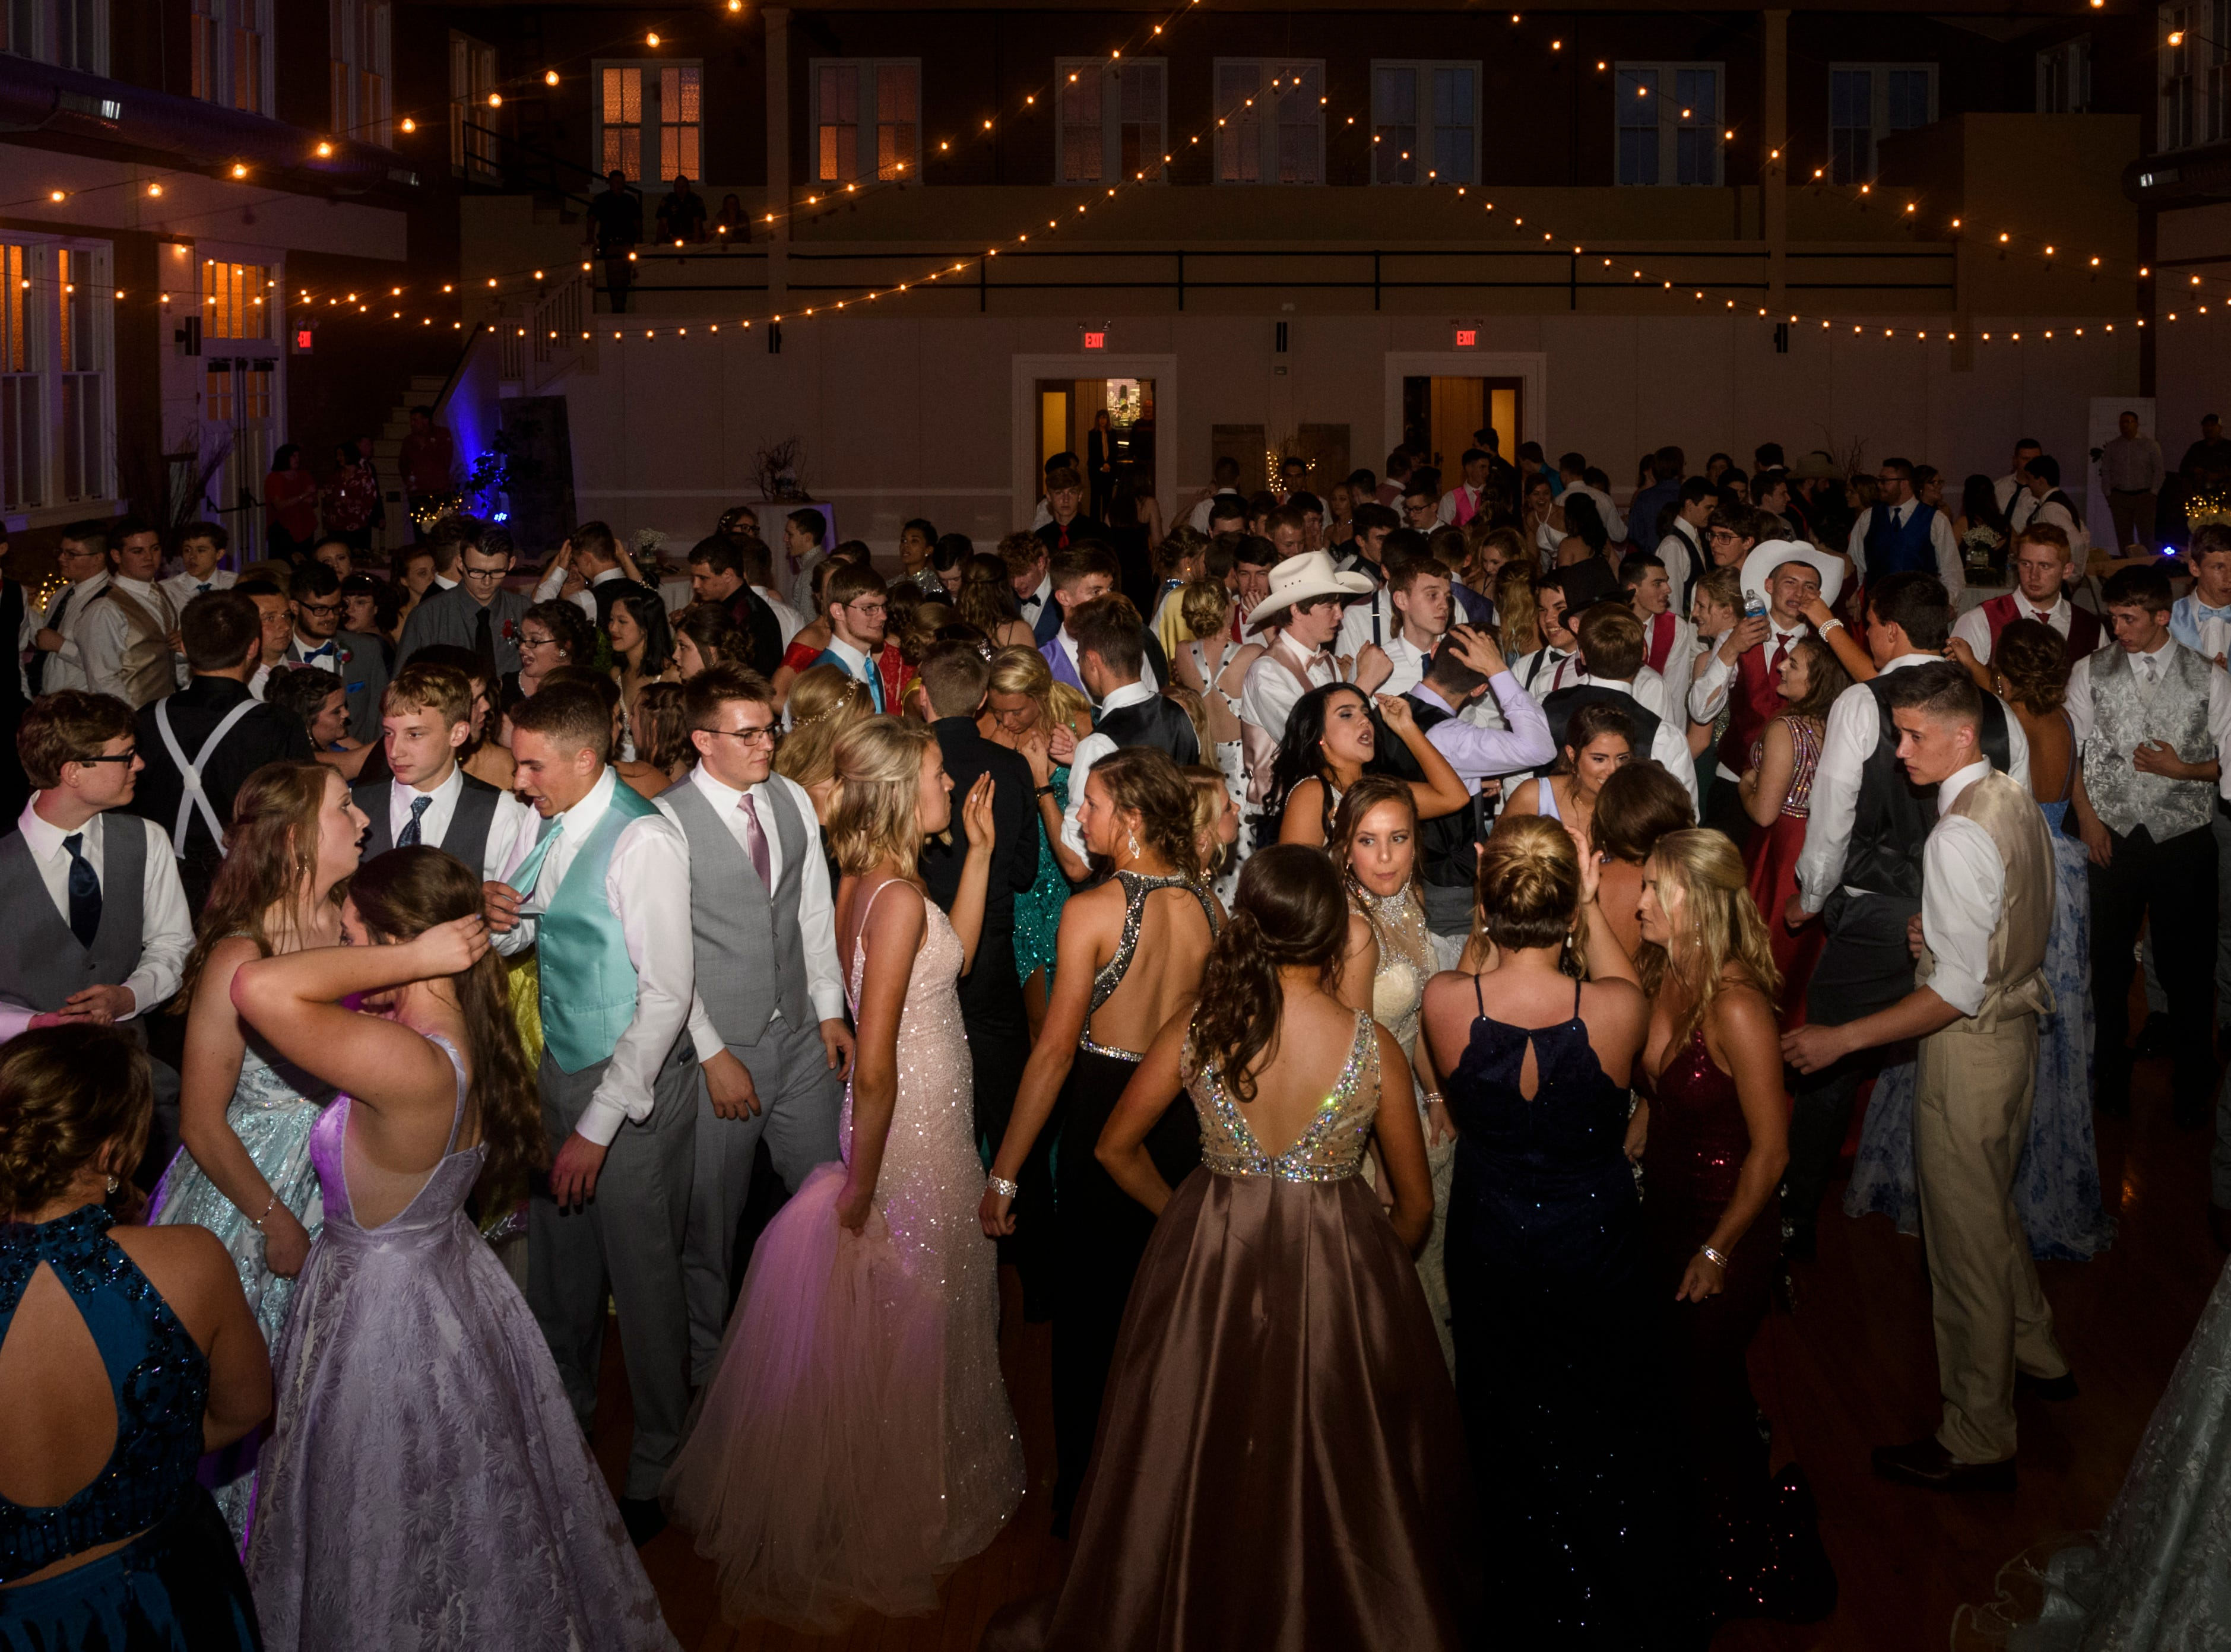 North Posey students dance the night away during prom held at the Ribeyre Center gymnasium in New Harmony, Ind., Saturday night, May 4, 2019.